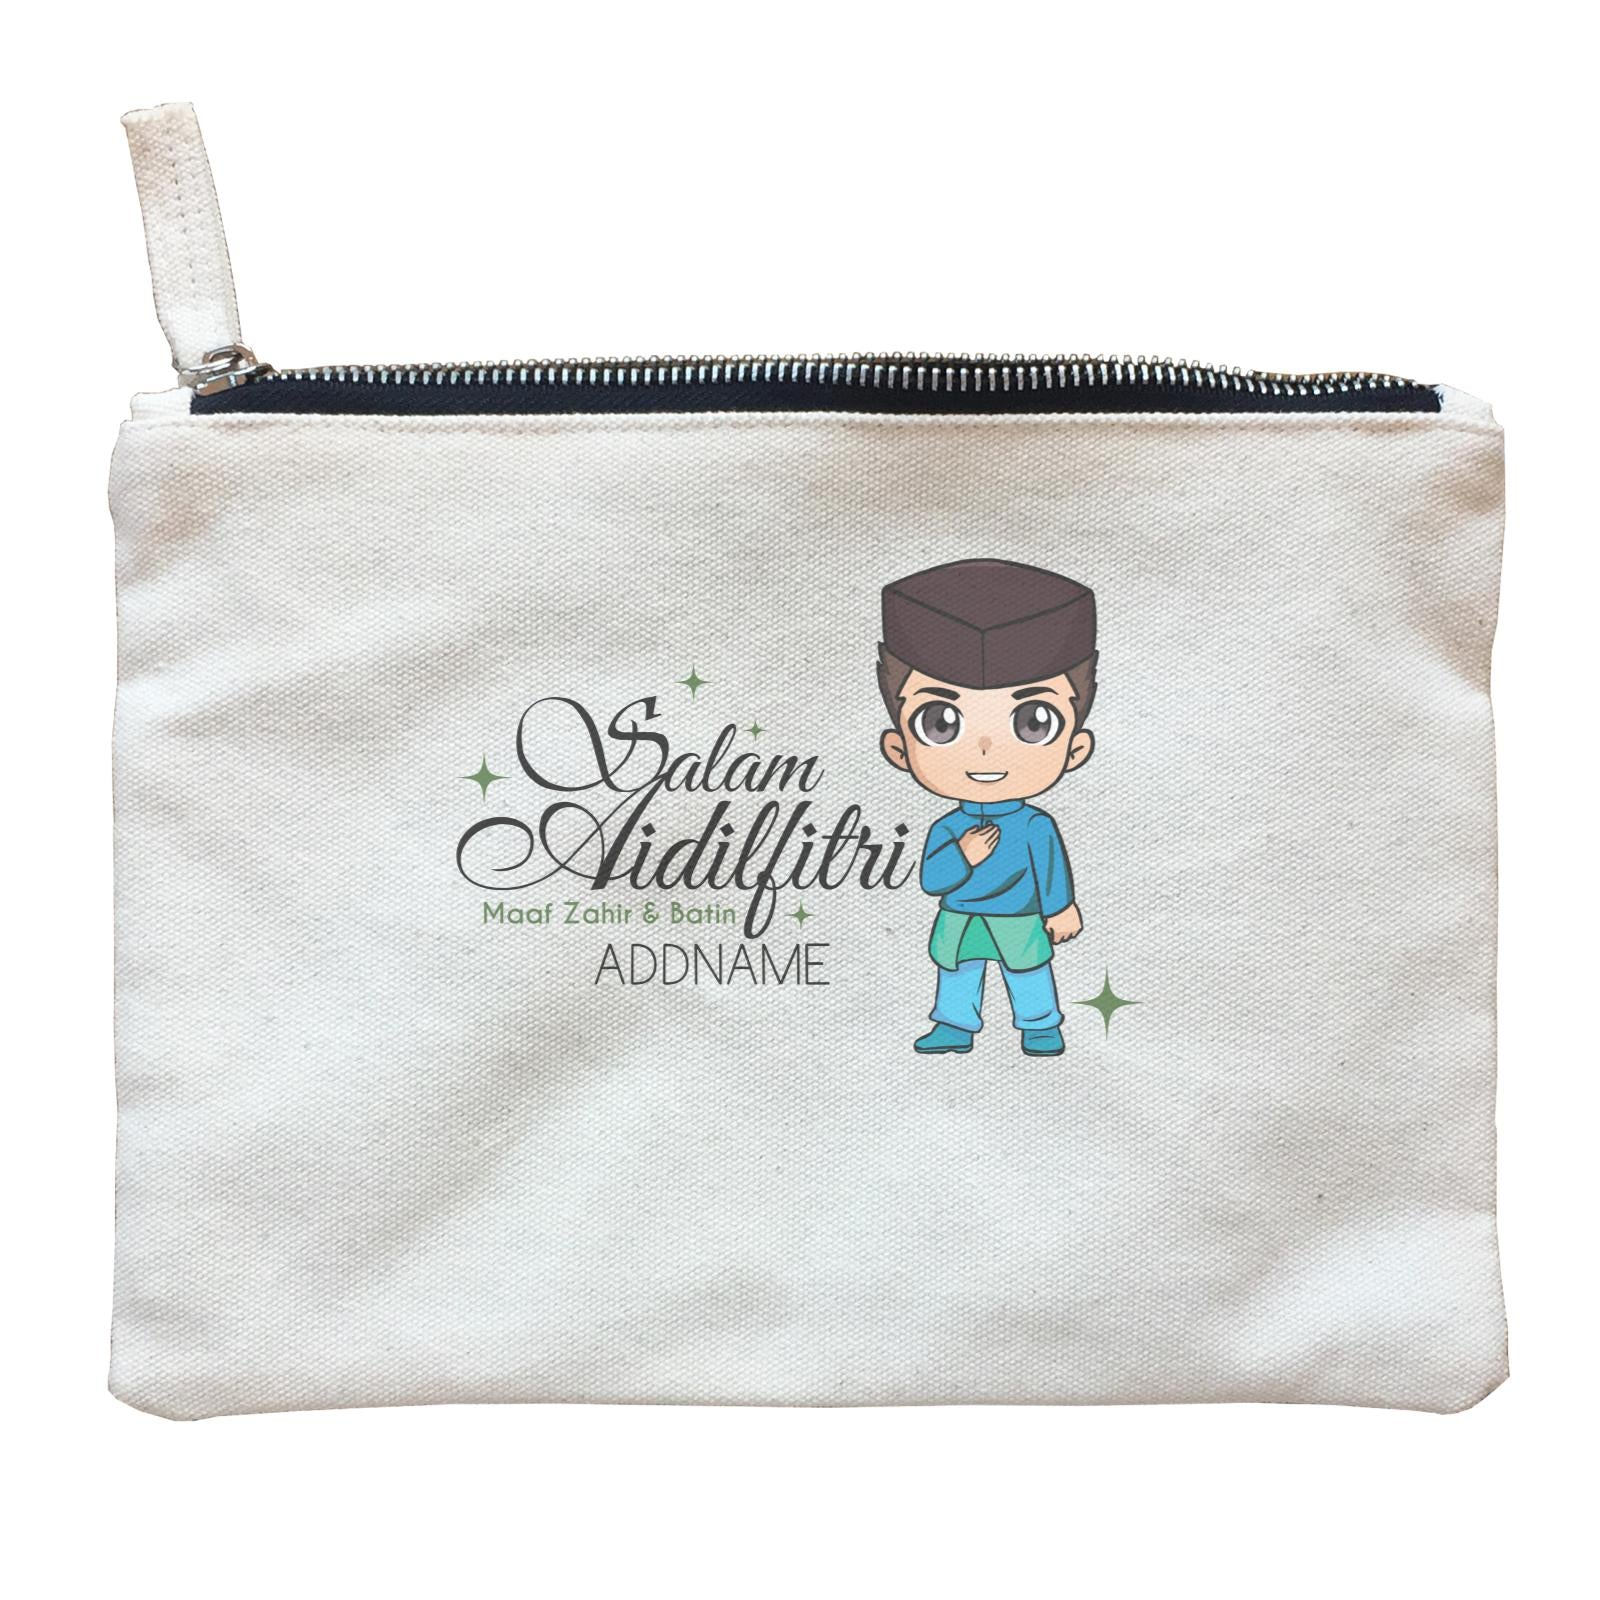 Raya Chibi Wishes Man Addname Wishes Everyone Salam Aidilfitri Maaf Zahir & Batin Zipper Pouch